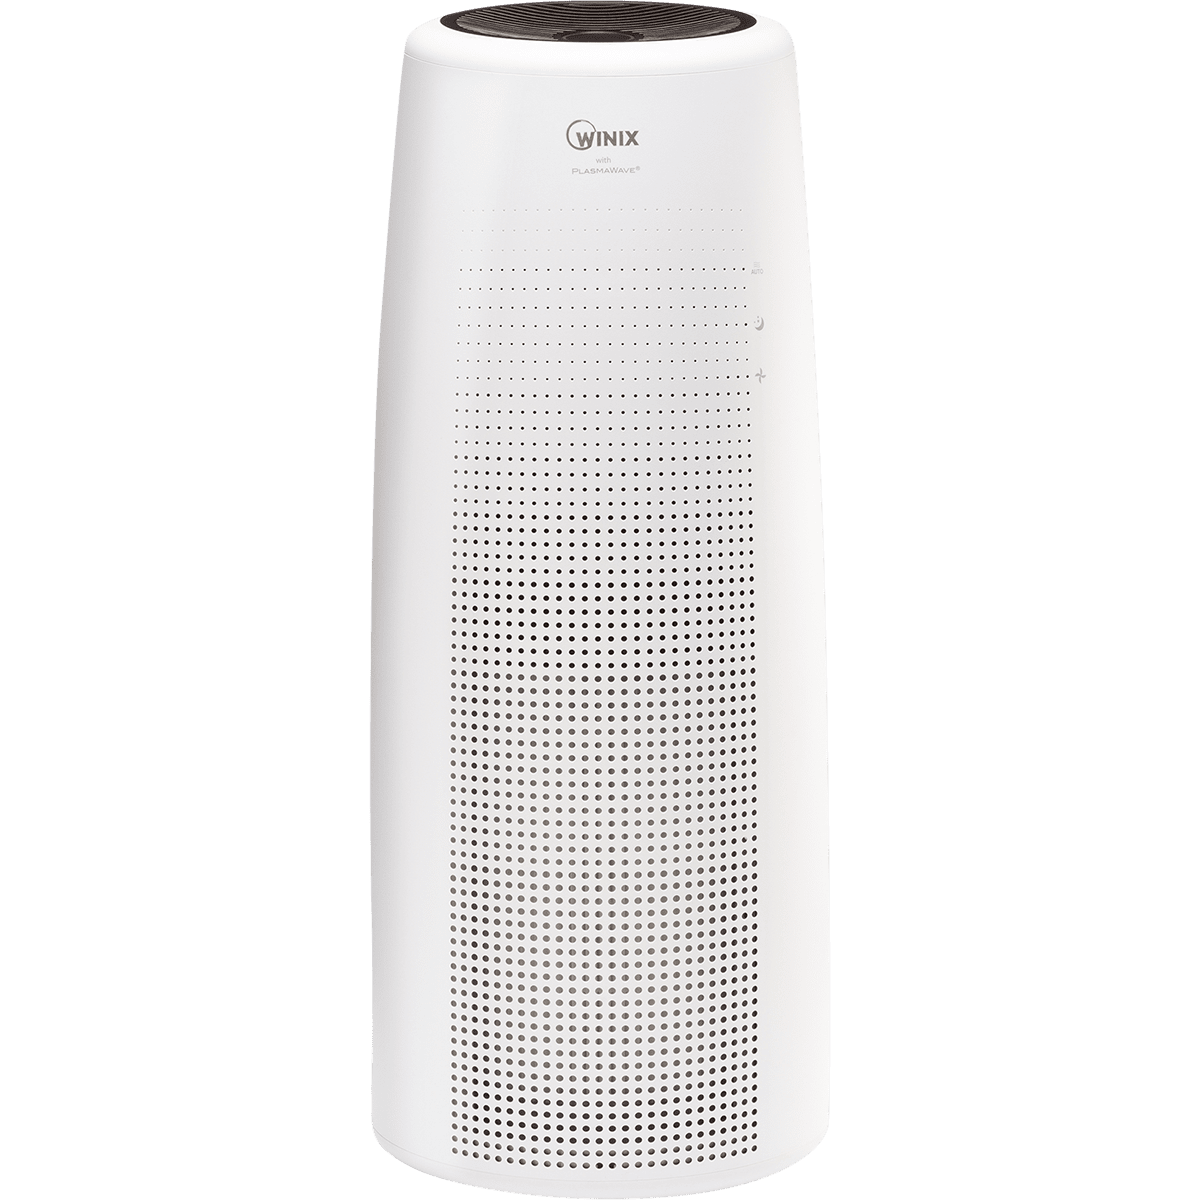 Winix nk100 air purifier free shipping sylvane for Winix filter cleaning